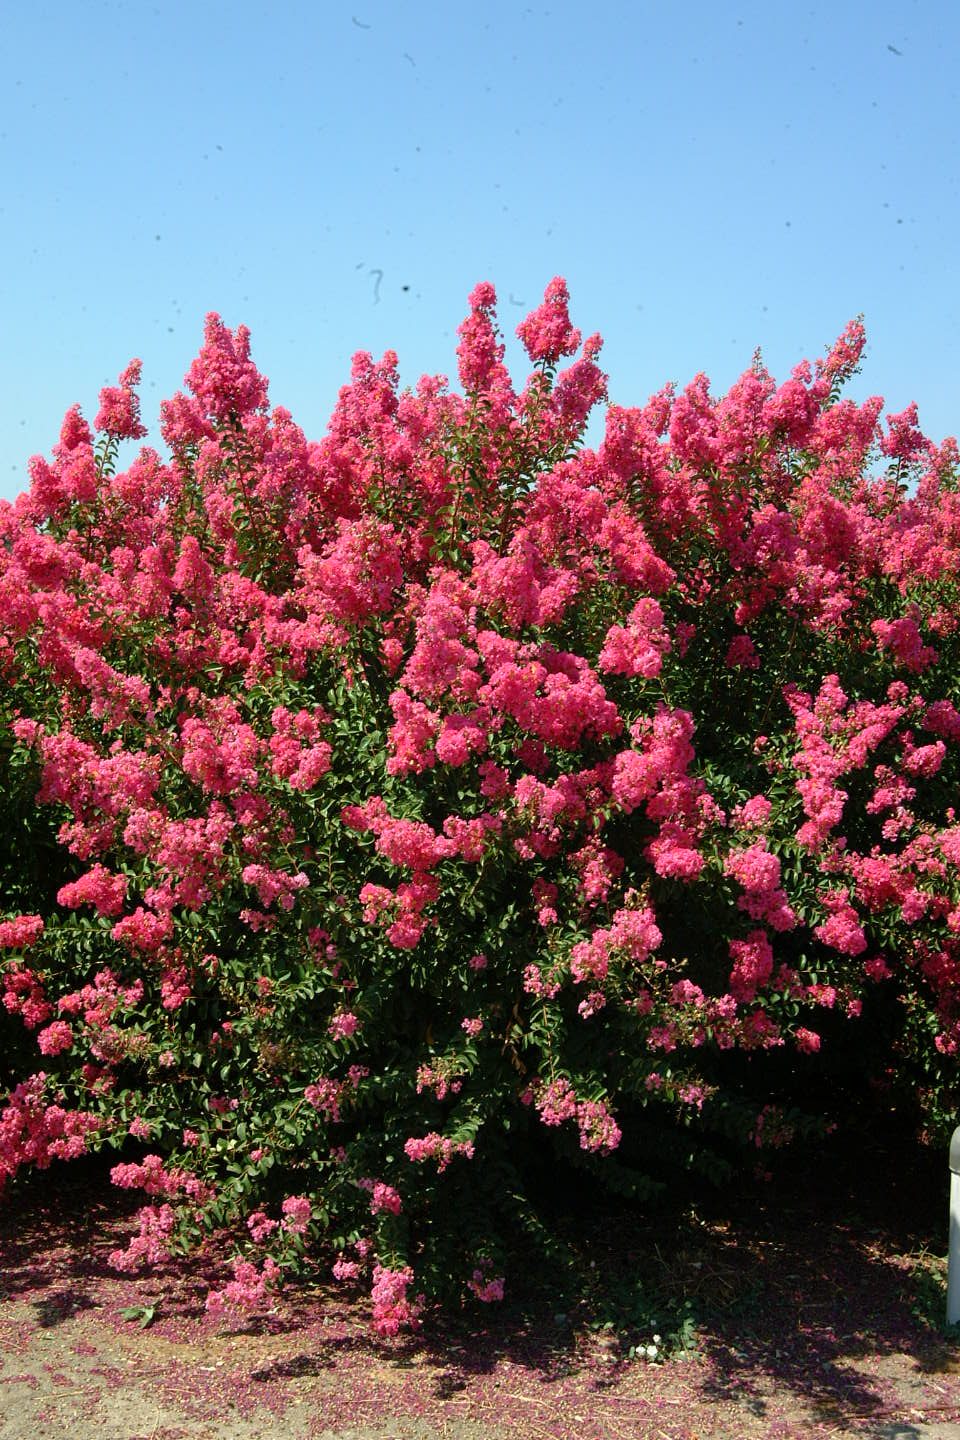 1000 images about crape myrtle on pinterest trees and shrubs trees and red flowers. Black Bedroom Furniture Sets. Home Design Ideas